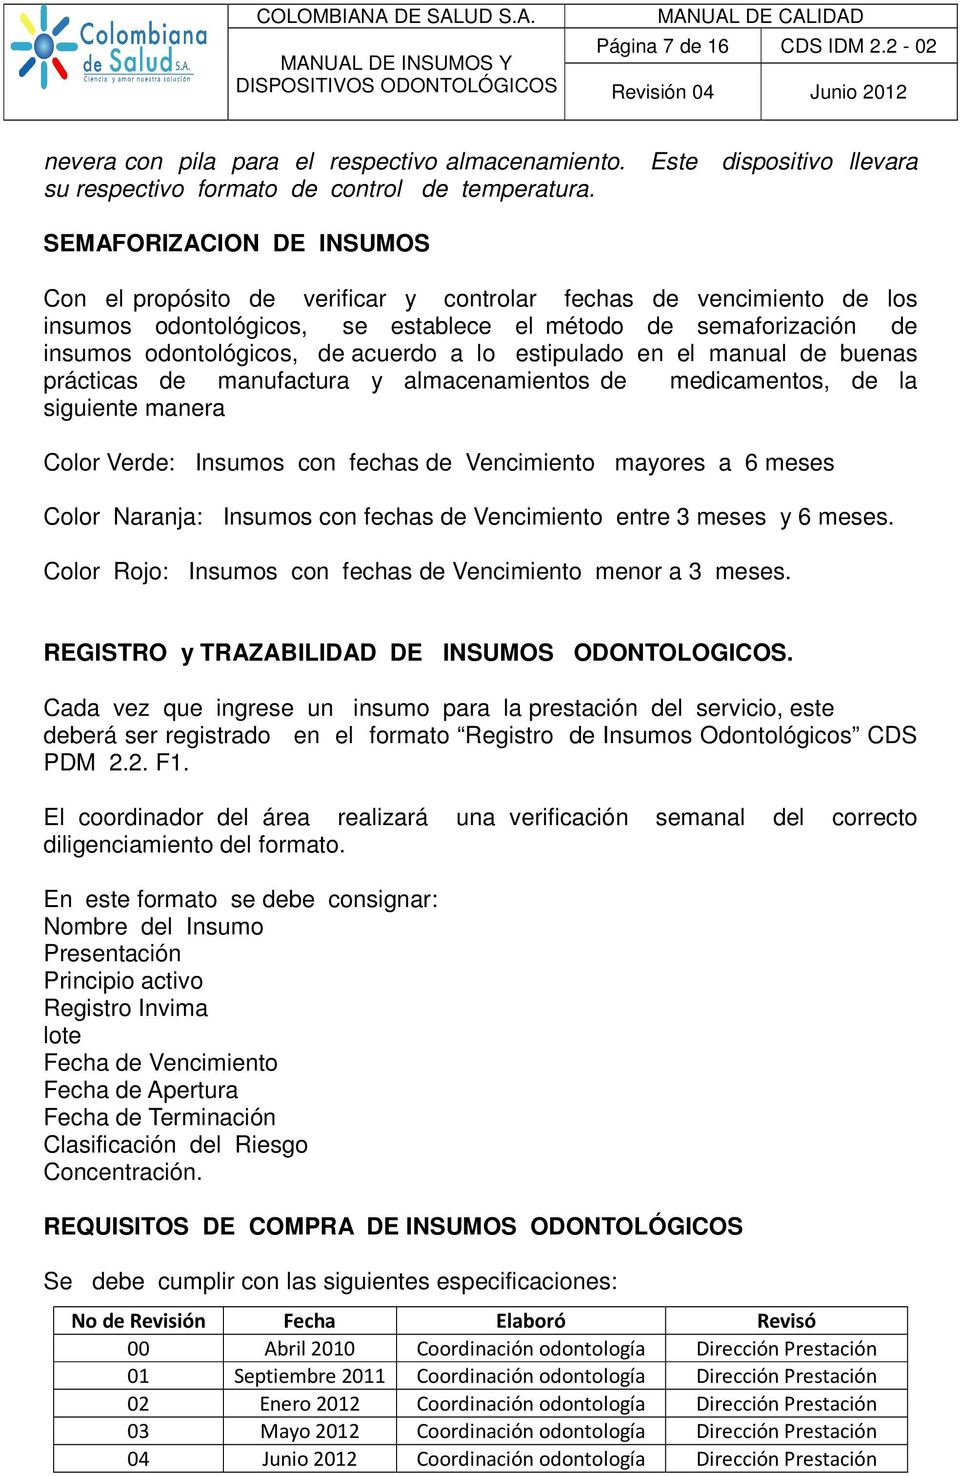 Manual de insumos y dispositivos odontologicos pdf for Manual de buenas practicas de manufactura pdf